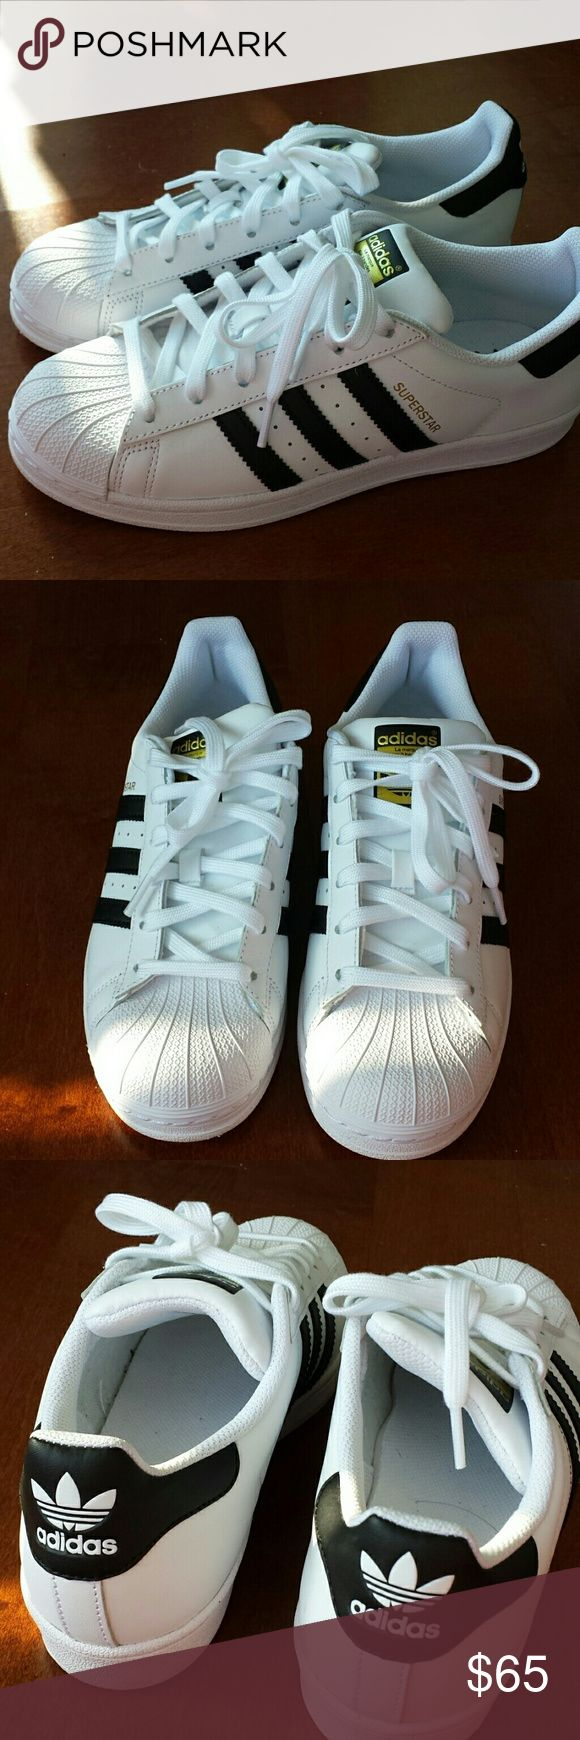 Adidas black white superstar striped sneakers Basically new Adidas superstar sneakers.  Worn for about 10 minutes before I decided I needed to size up.  These are size 6.5, but they run big.  Please know your sizing! Adidas Shoes Athletic Shoes